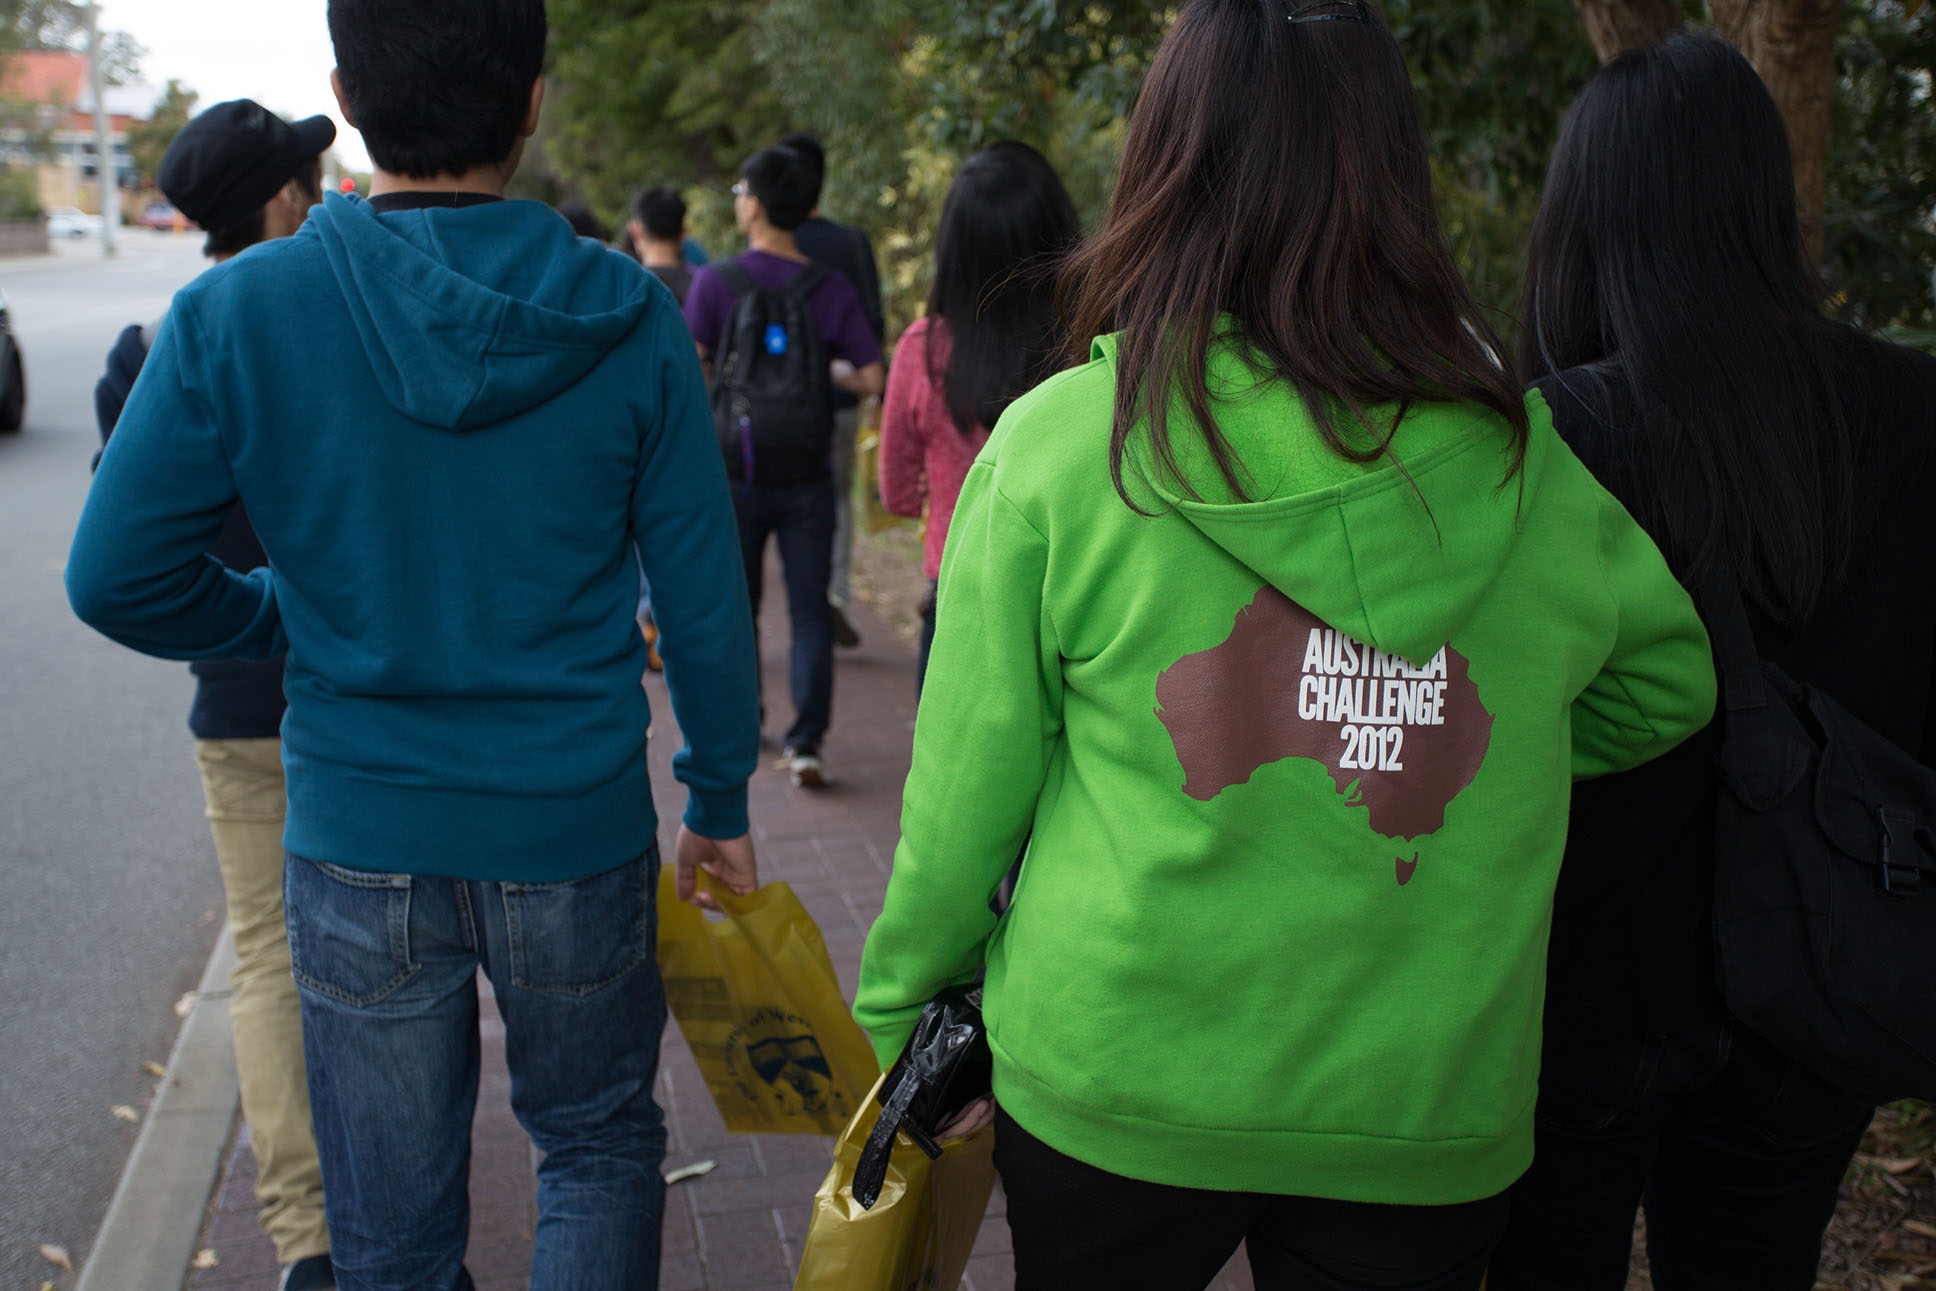 On our way to class featuring our Shrek green hoodies!